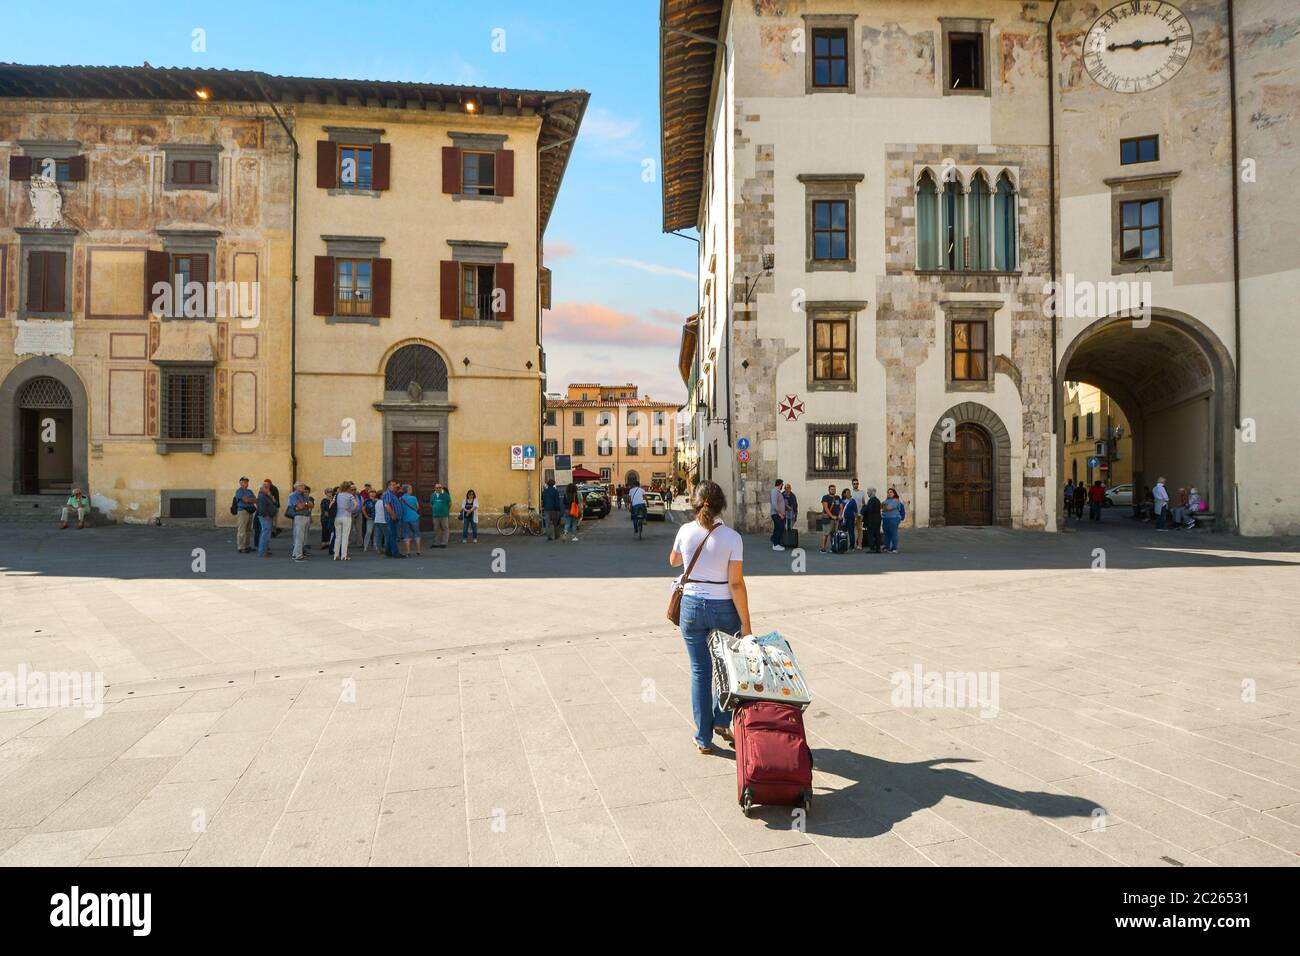 A female tourist traveling solo and pulling a luggage suitcase on wheels in the historic center of Pisa, Italy. Stock Photo